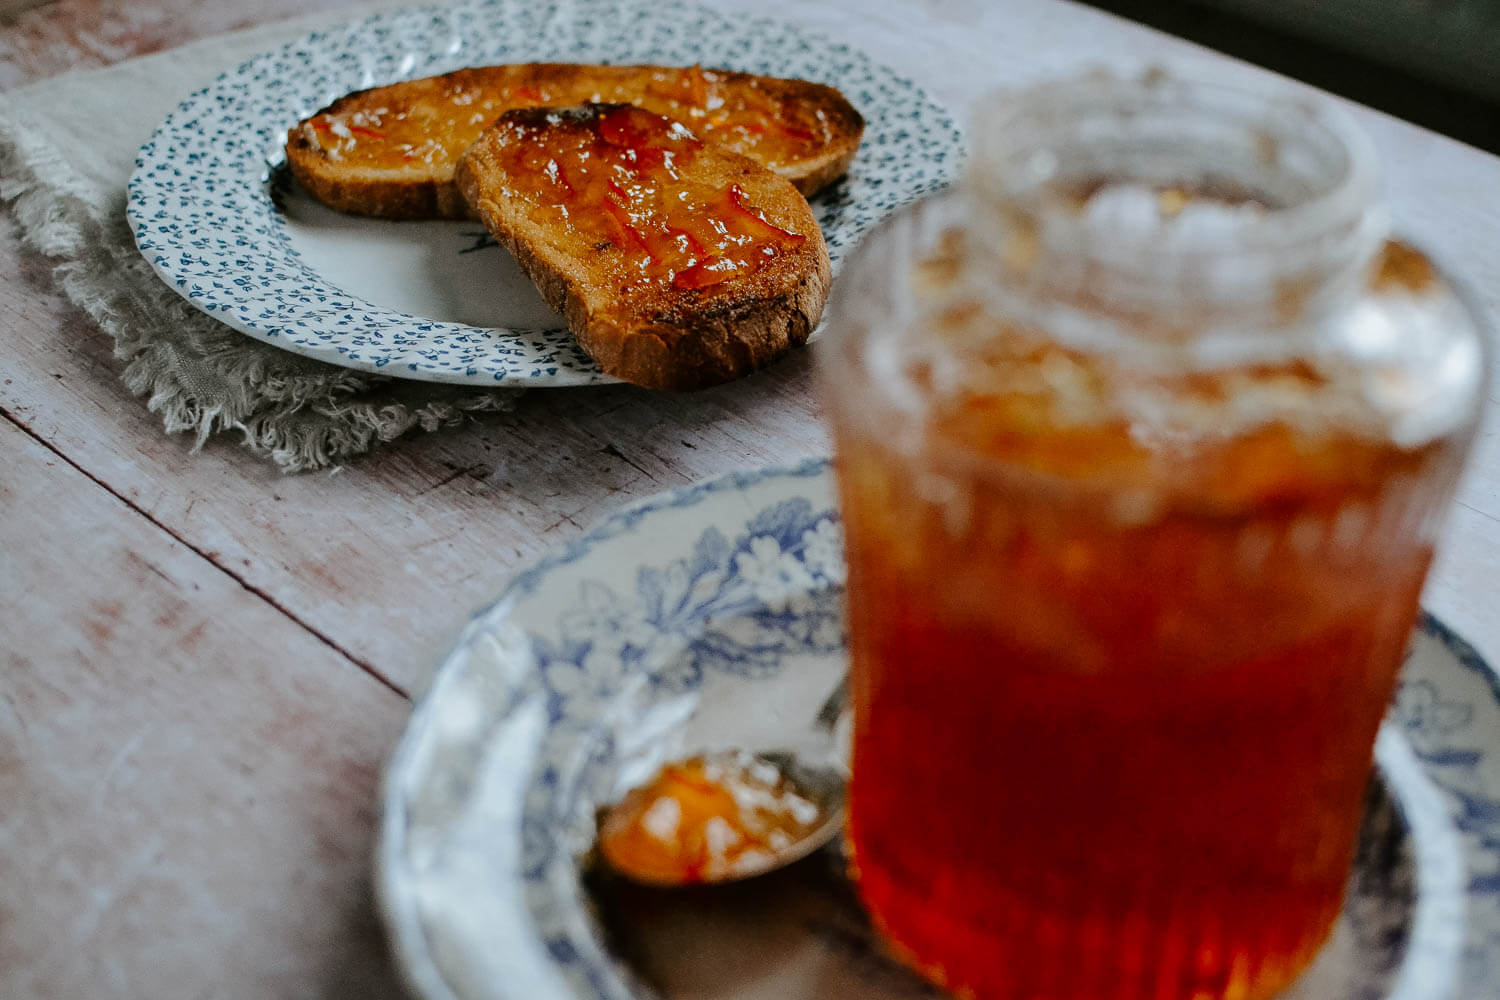 Farmhouse bread with marmalade on a rustic wooden table